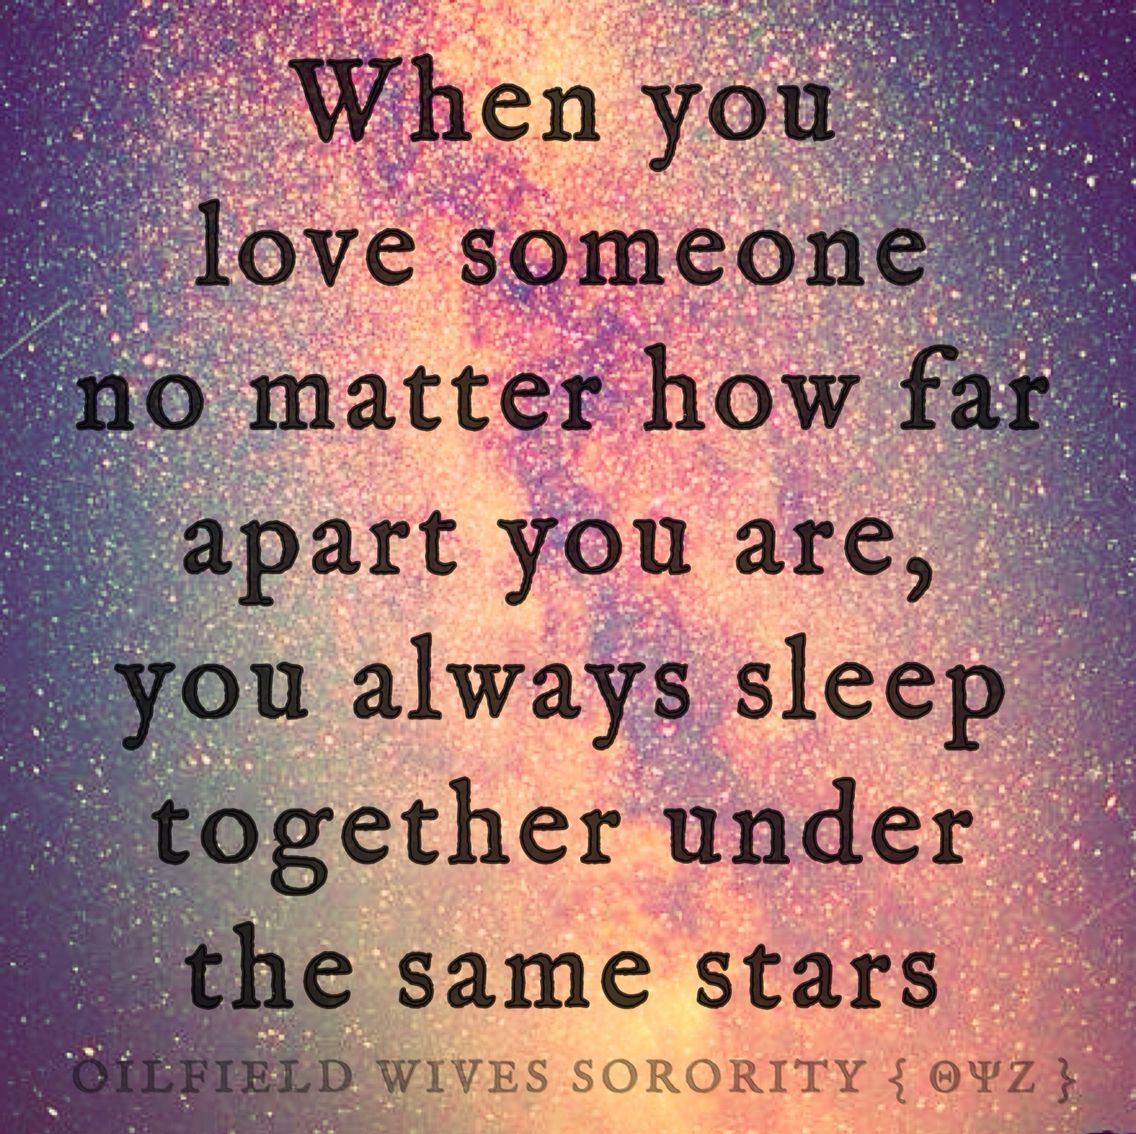 When you love someone no matter how far apart you are you always sleep to her